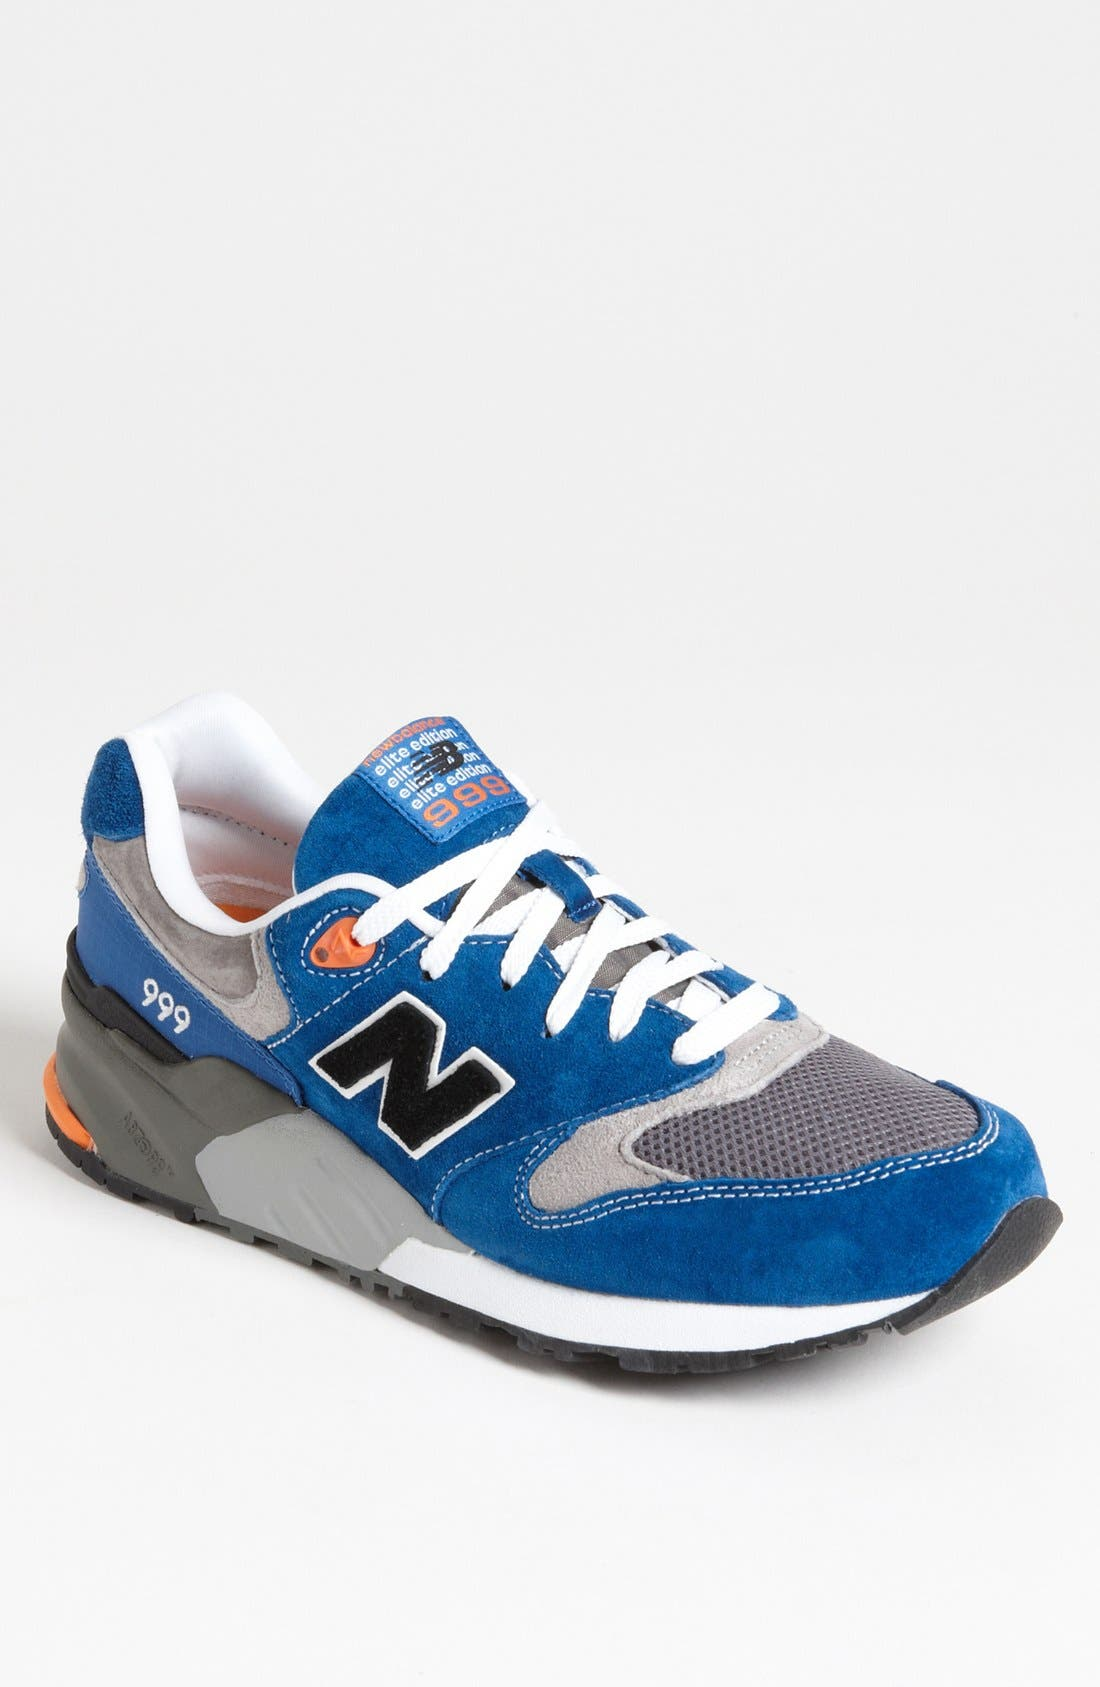 Alternate Image 1 Selected - New Balance '999 Bringback' Sneaker (Men) (Online Only)